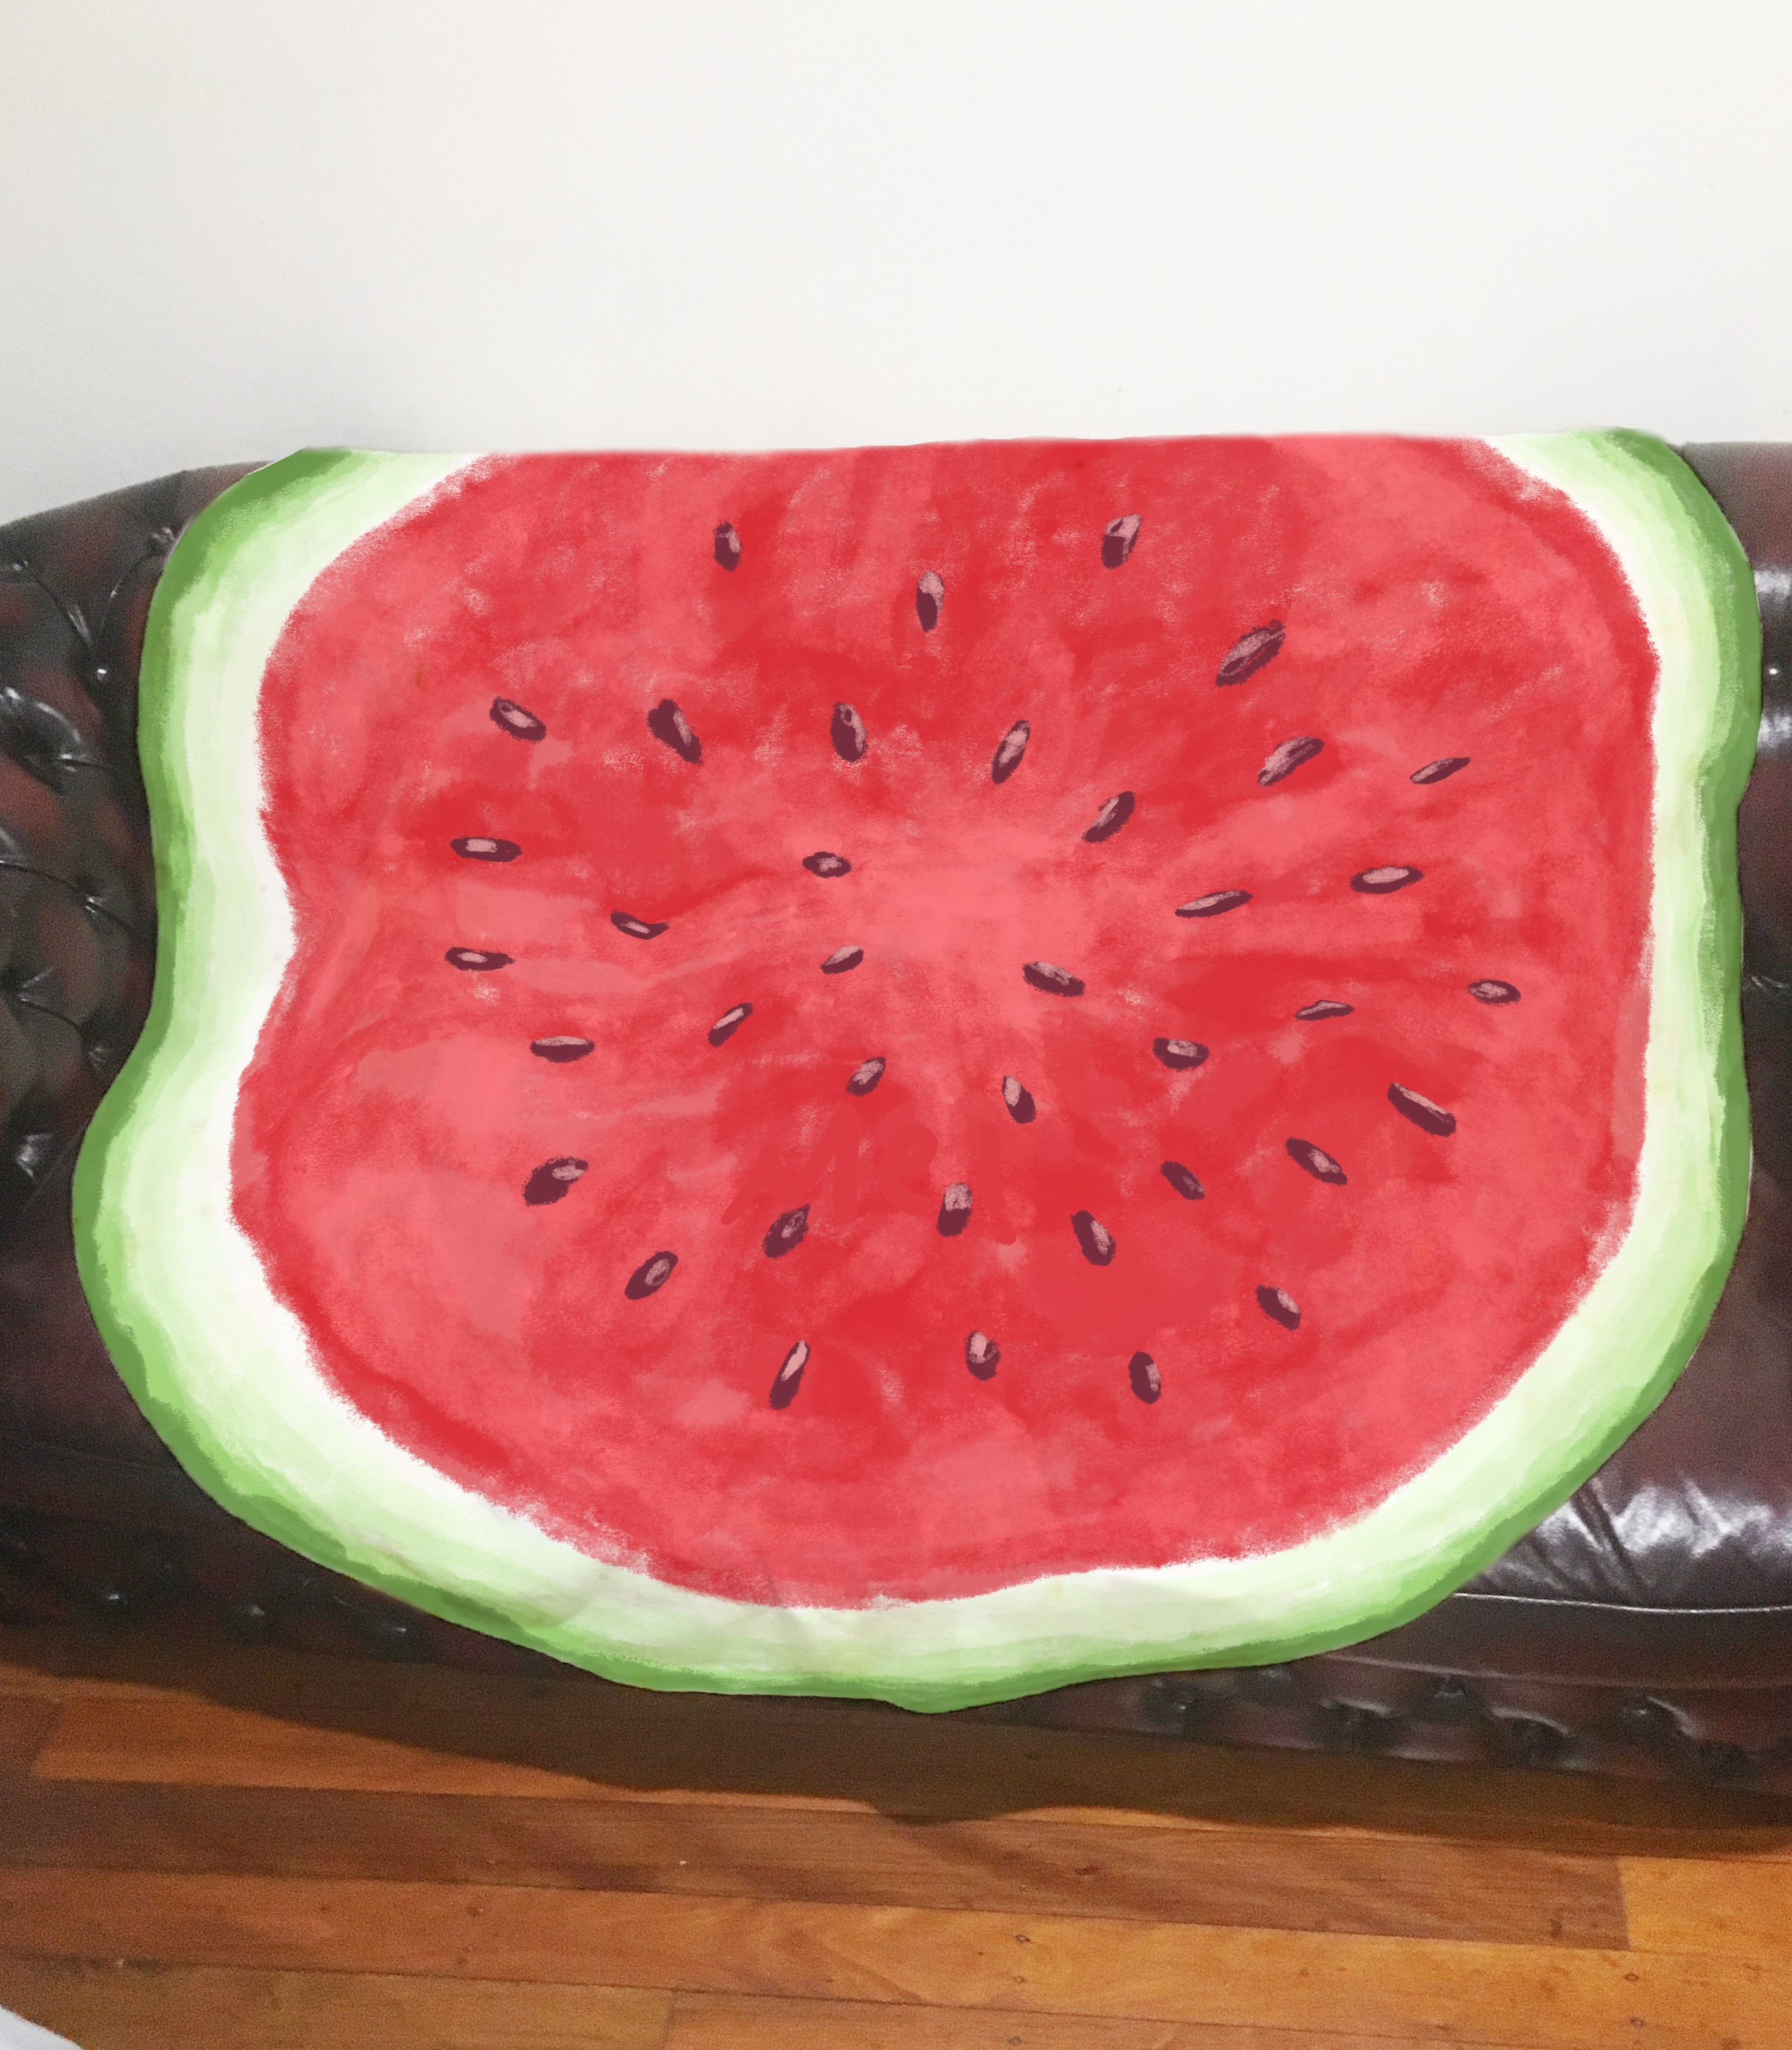 We need an eye catching watermelon design for a novelty blanket